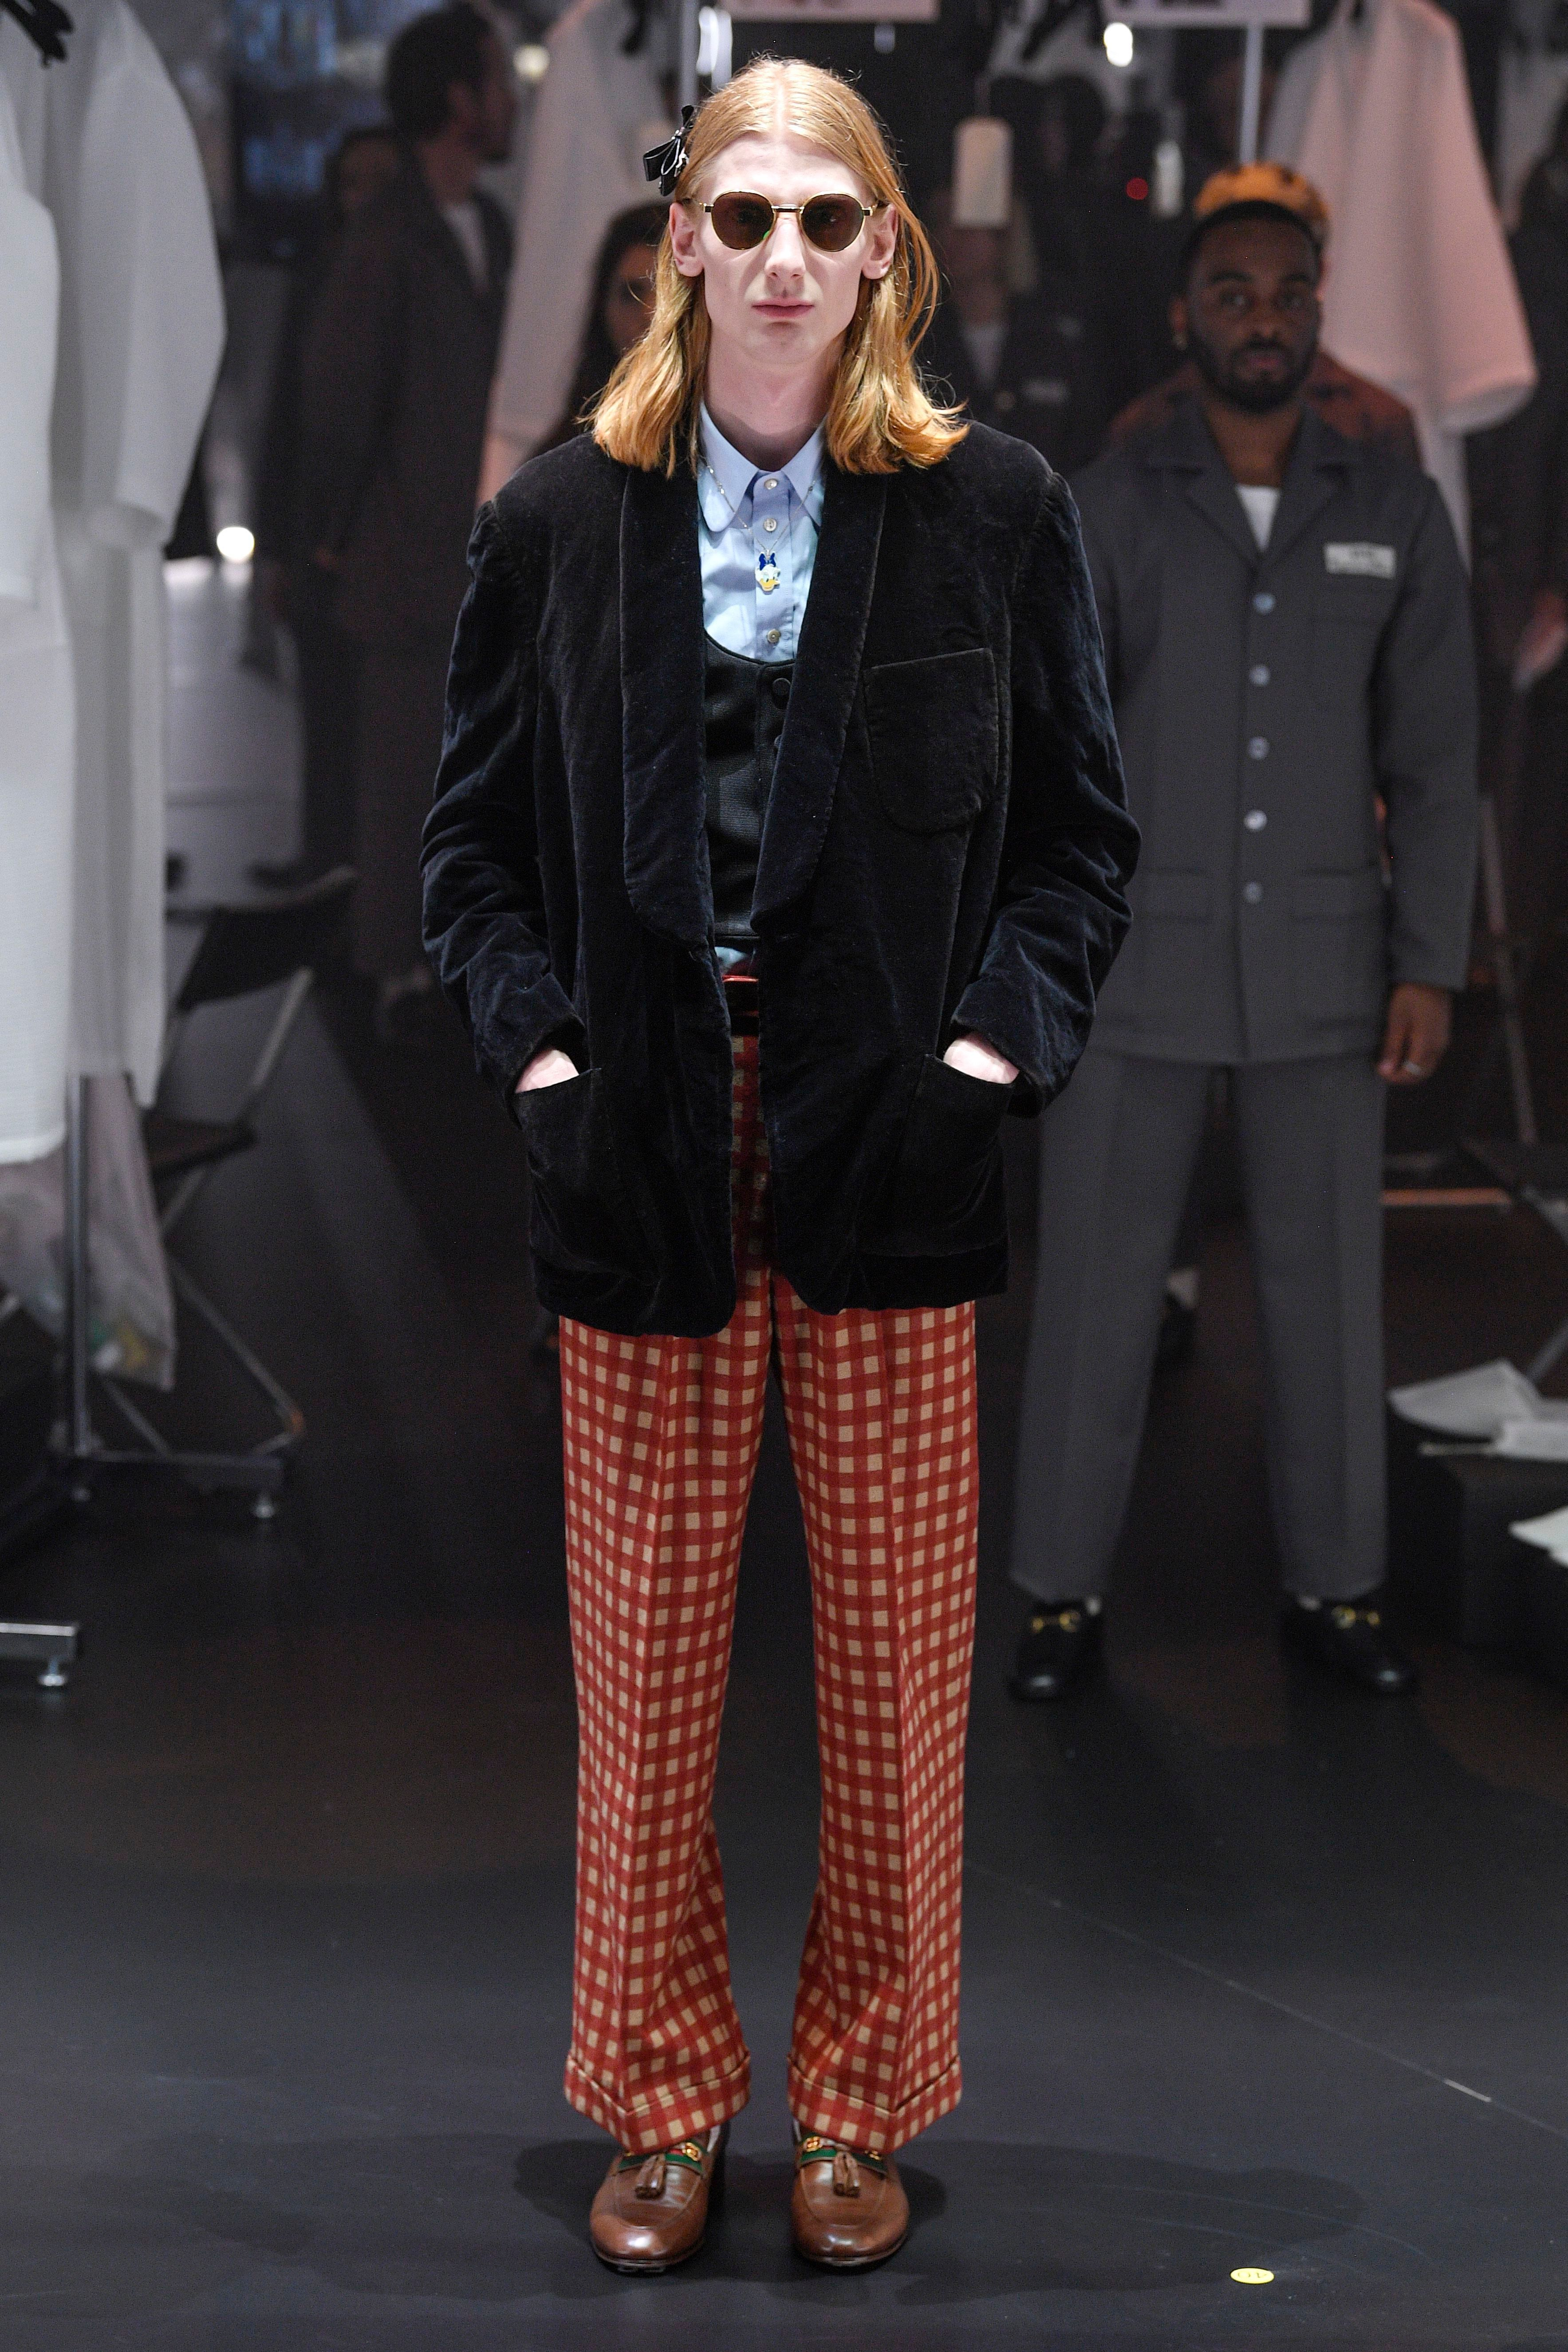 Expect to see harry styles in these gucci aw20 looks any